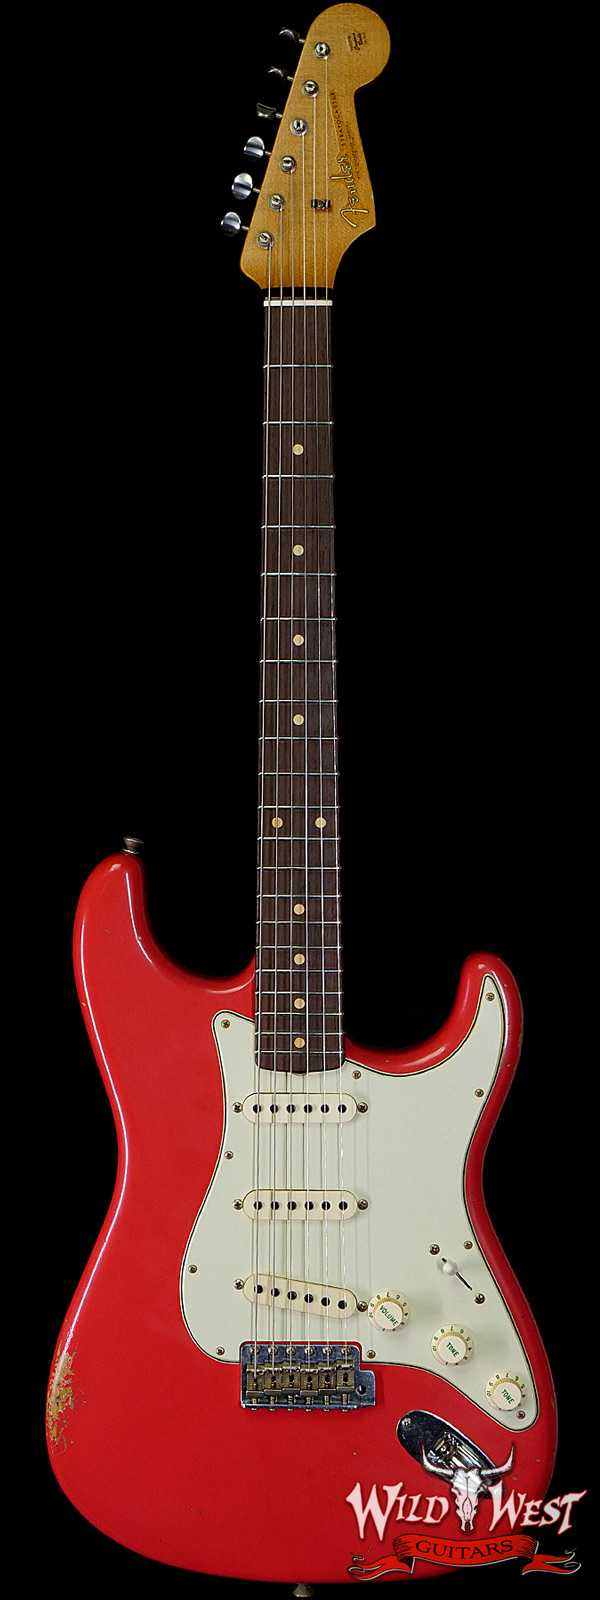 Fender Custom Shop Paul Waller Maserbuilt 1961 Stratocaster Relic Hand-Wound Pickups Rosewood Slab Board Fiesta Red